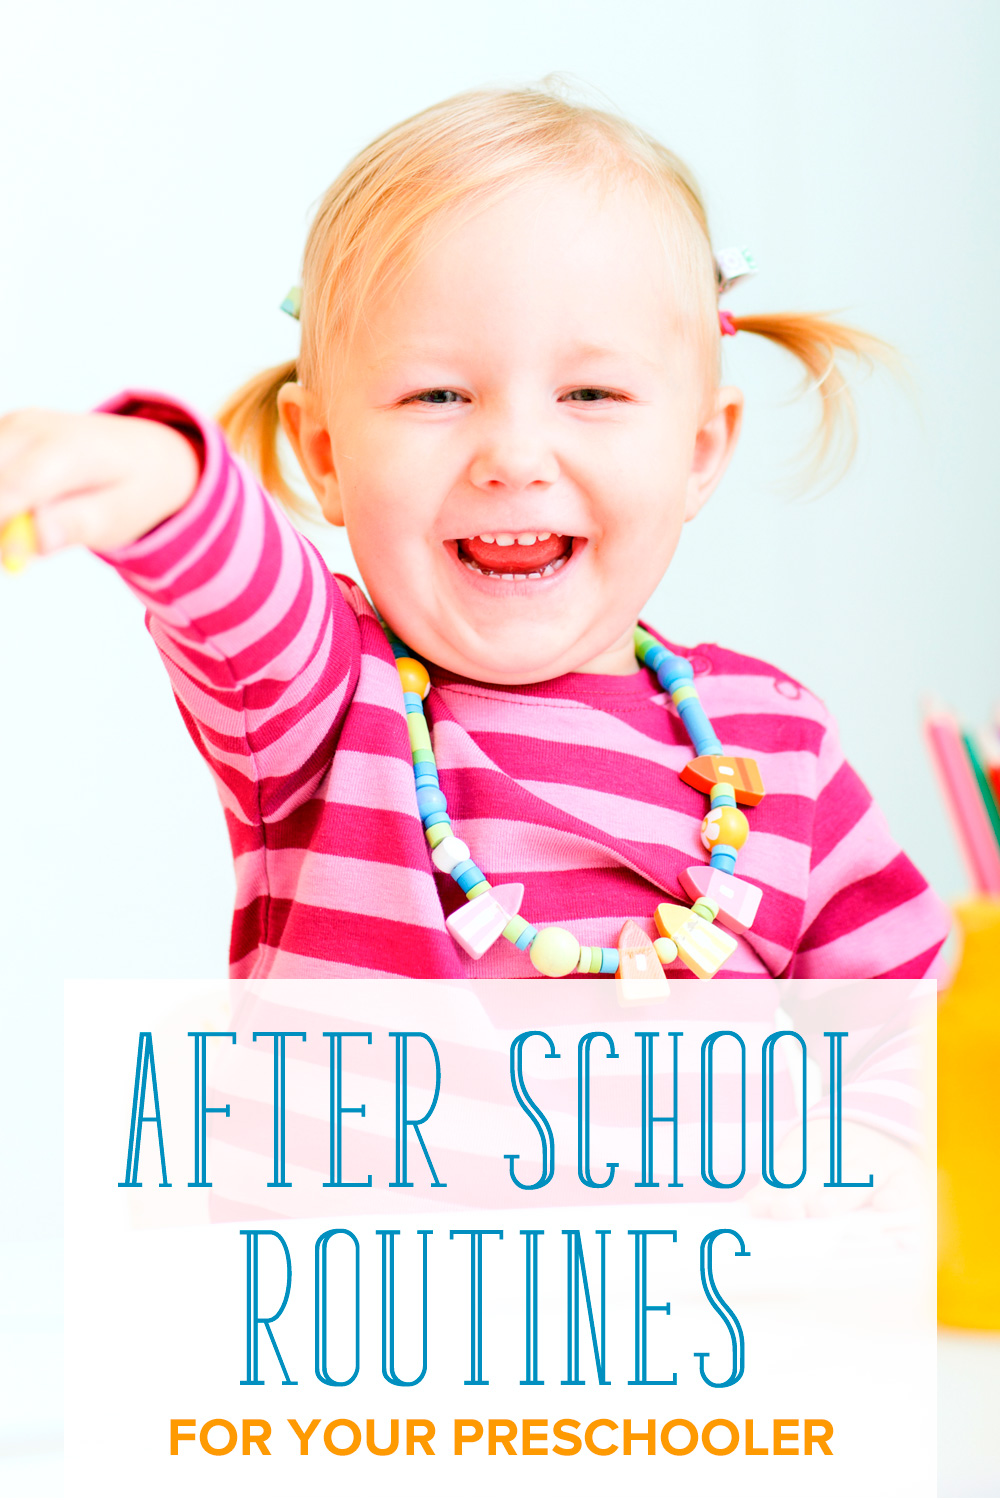 What to do after your child comes home from preschool? Here are some ideas on creating a good after school routine for your preschooler.